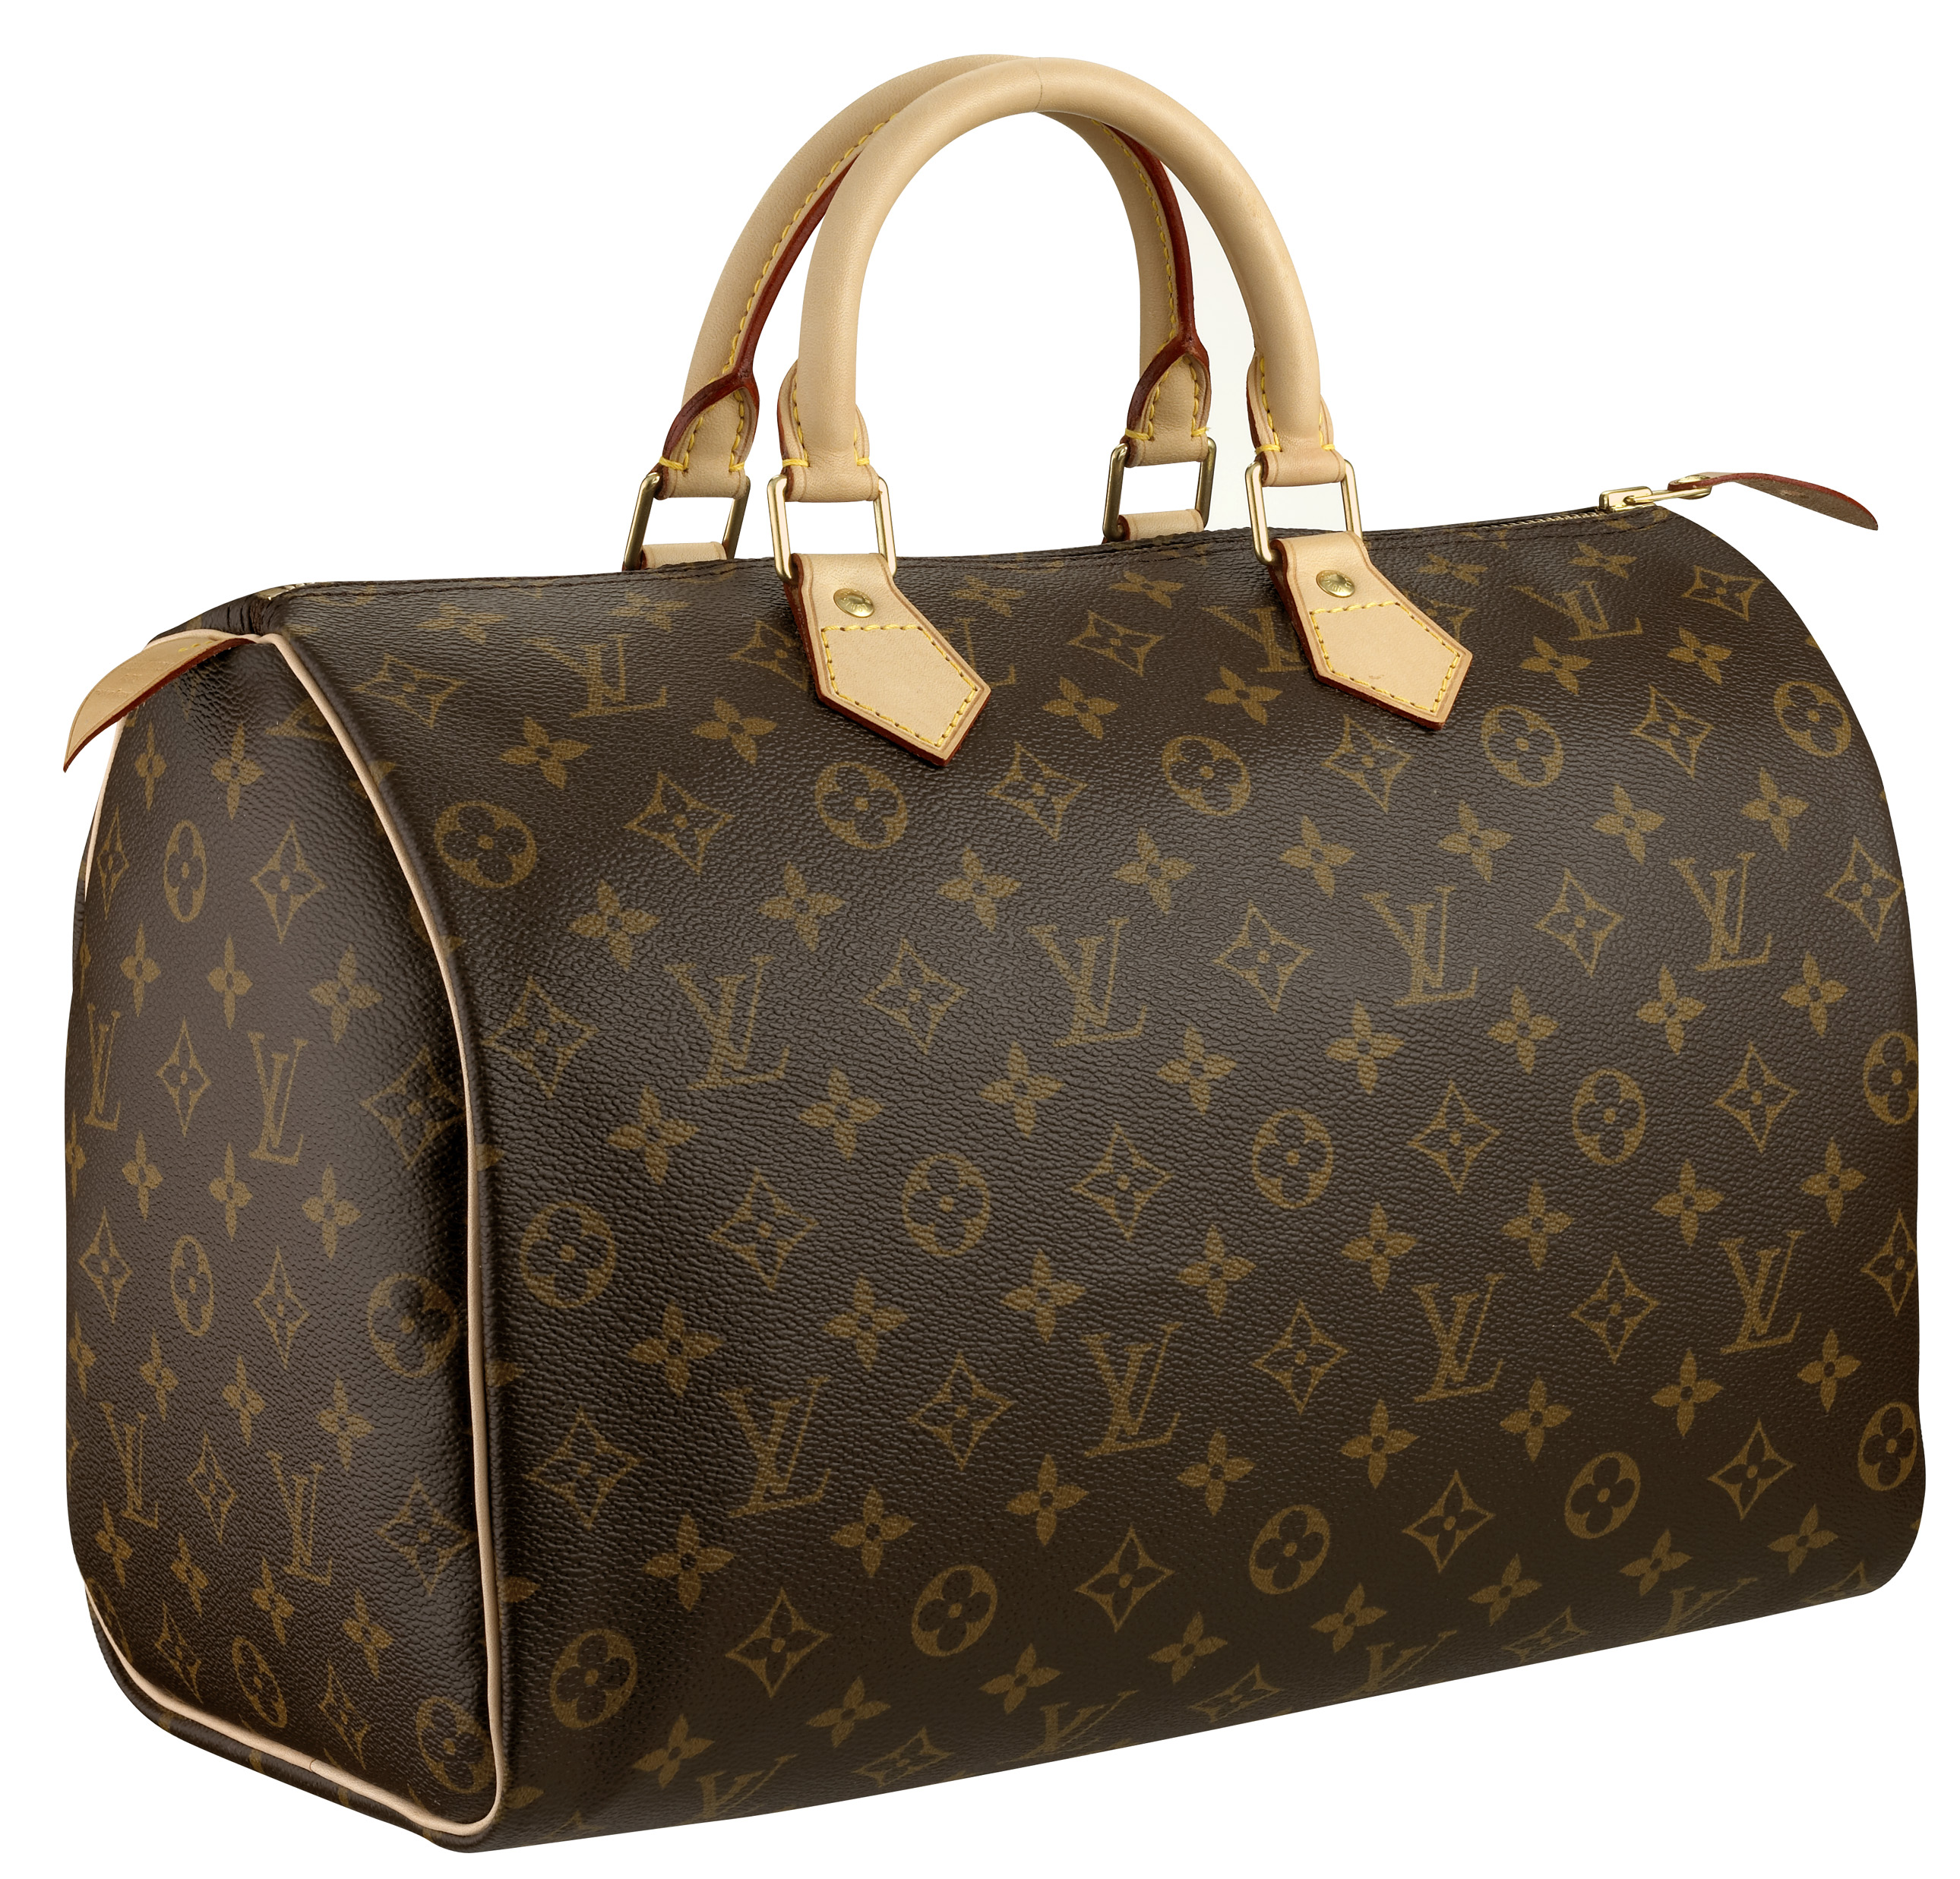 Louis vuitton celebrates 150 years of excellence in savoir for Louis vuitton miroir bags